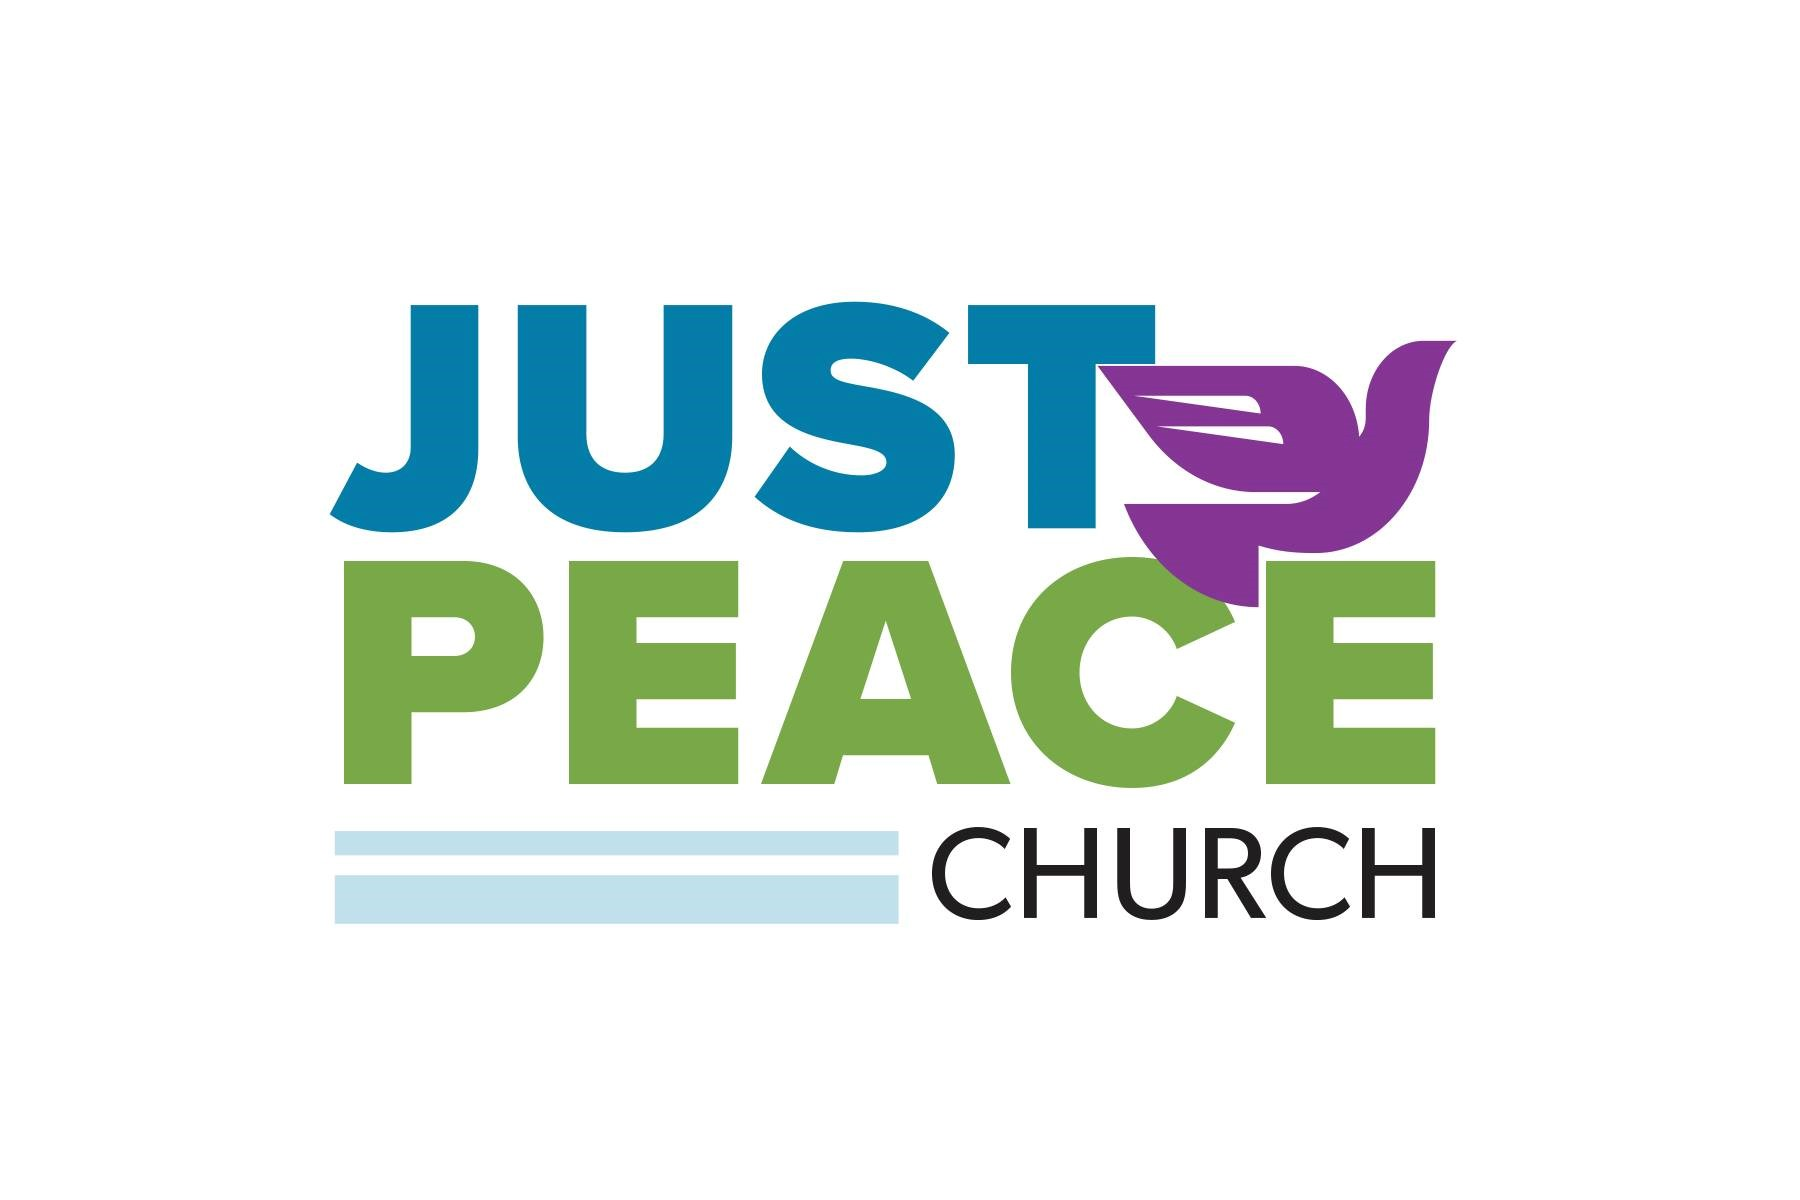 Just Peace Church logo